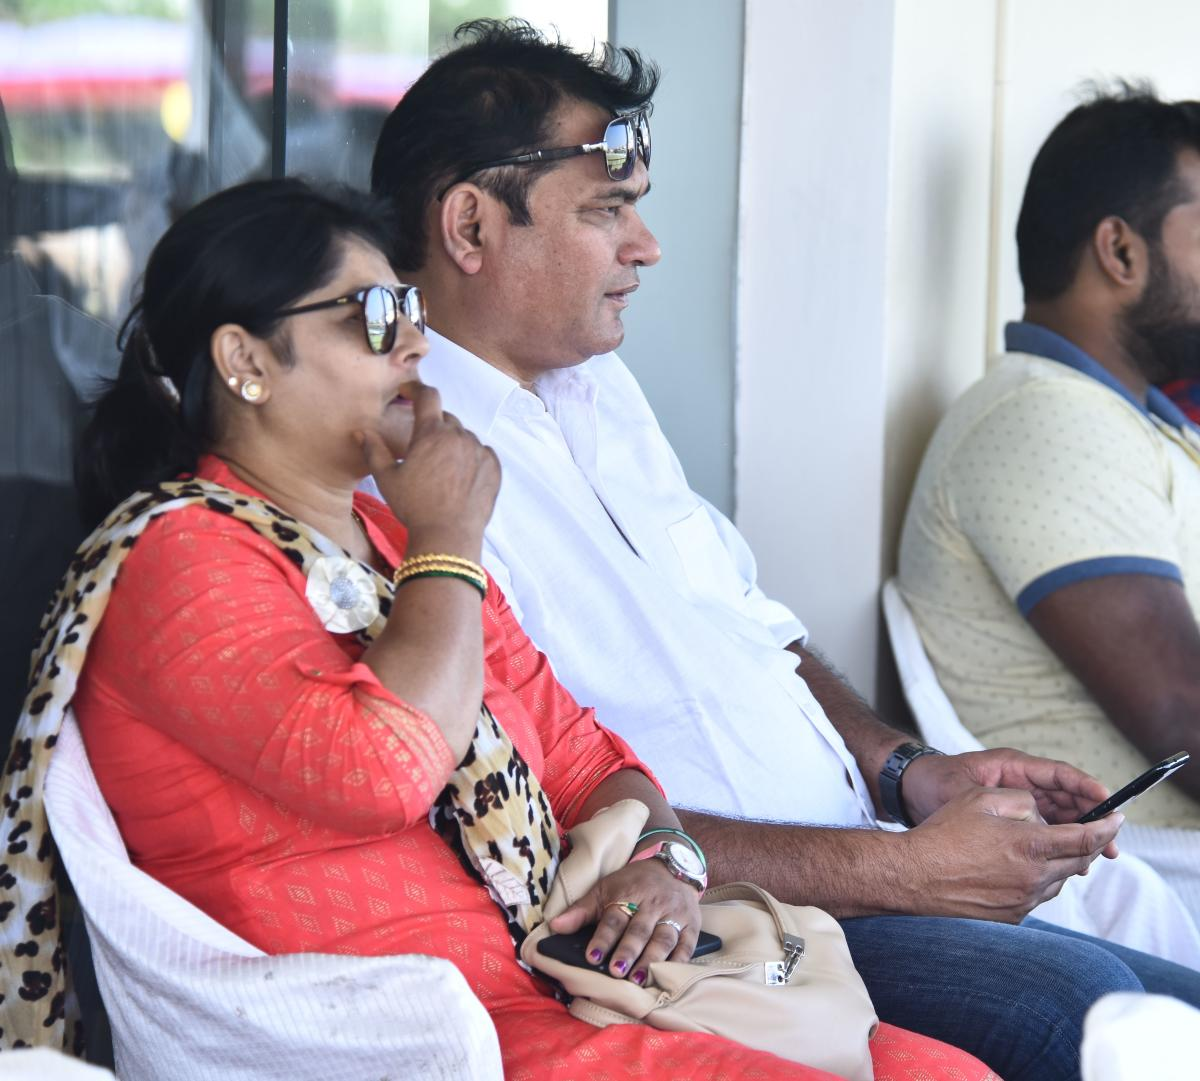 HAPPYDUO: Parents Gajanan More and Sarita More watched their son Ronit bag a crucial five-wicket haul for Karnataka against Mumbai in a Group A Ranji Trophy match in Belagavi on Thursday. DH PHOTO/Tajuddin Azadಪಂದ್ಯ ವೀಕ್ಷಿಸ